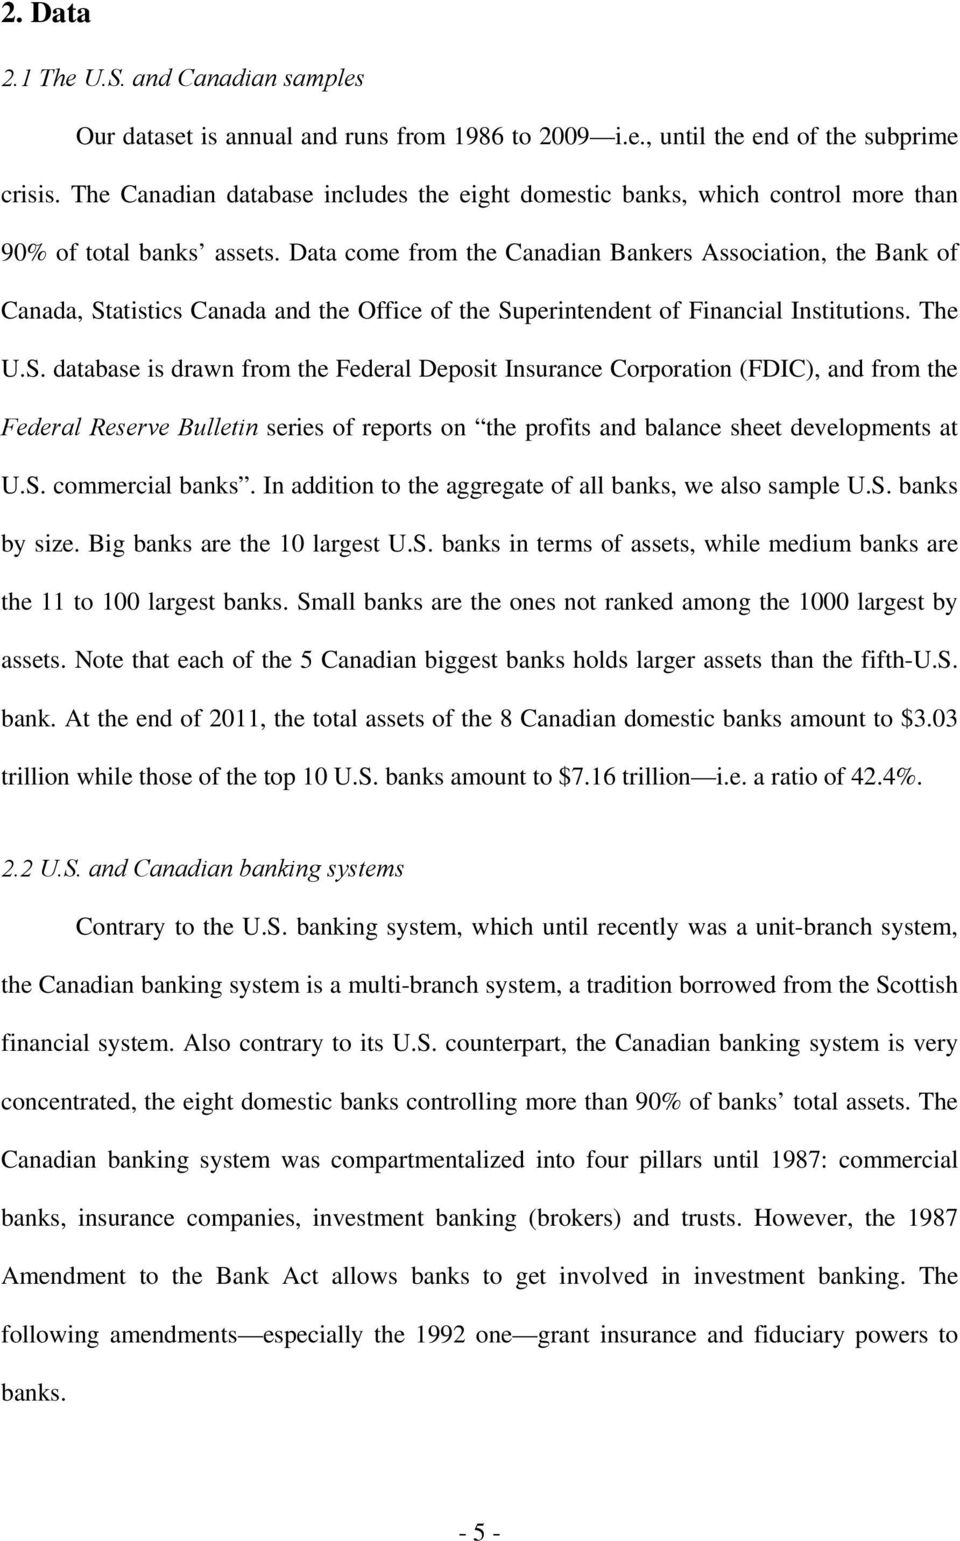 Data come from the Canadian Bankers Association, the Bank of Canada, St